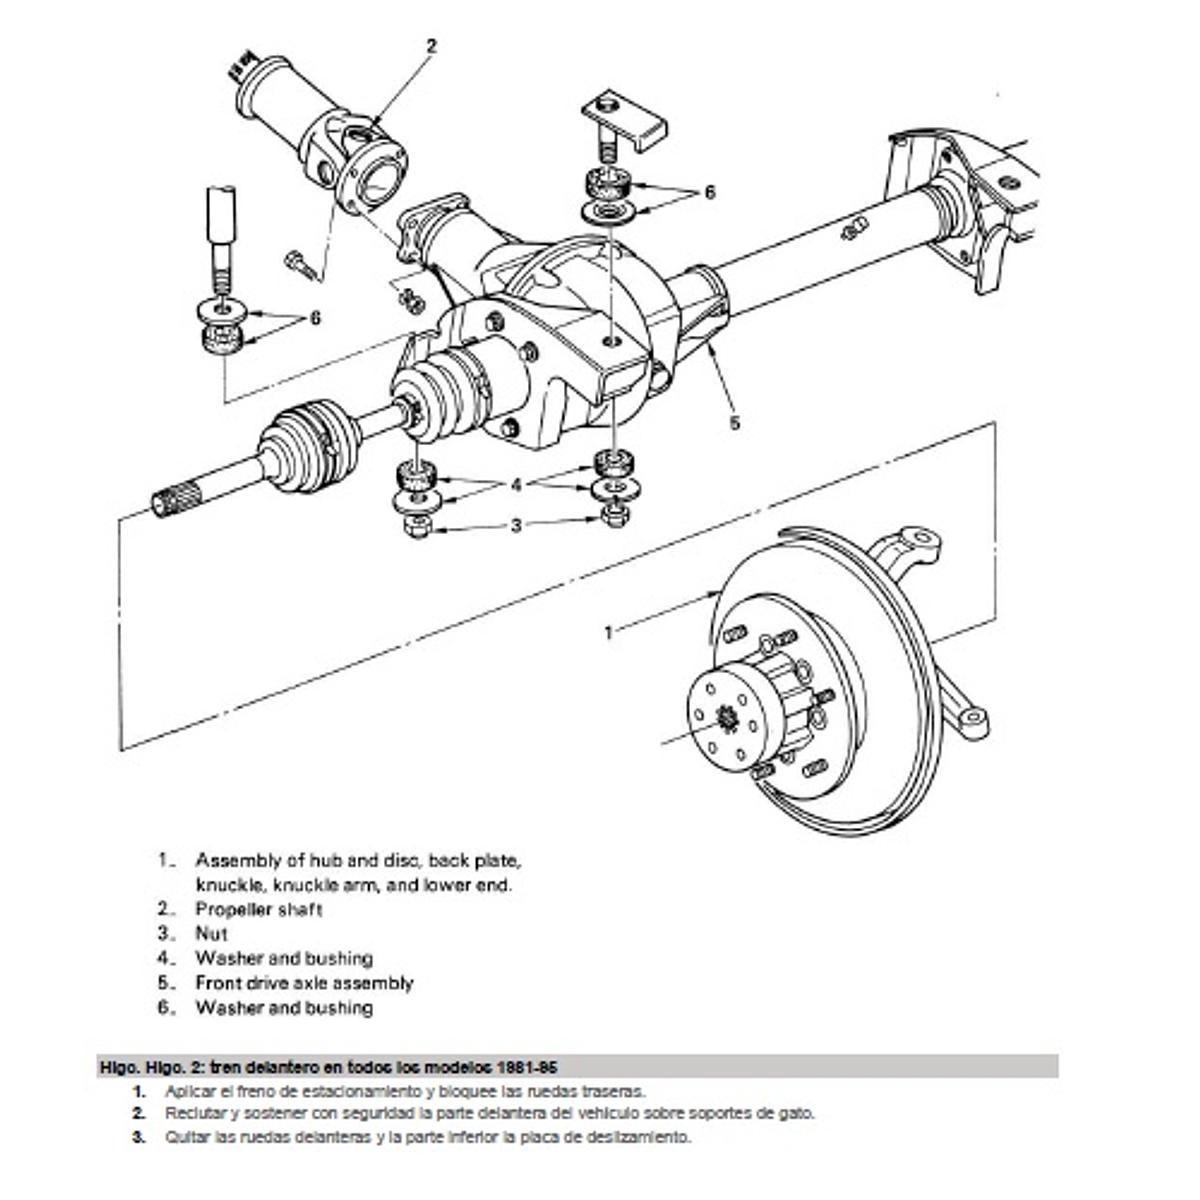 Manual De Taller Chevrolet Luv